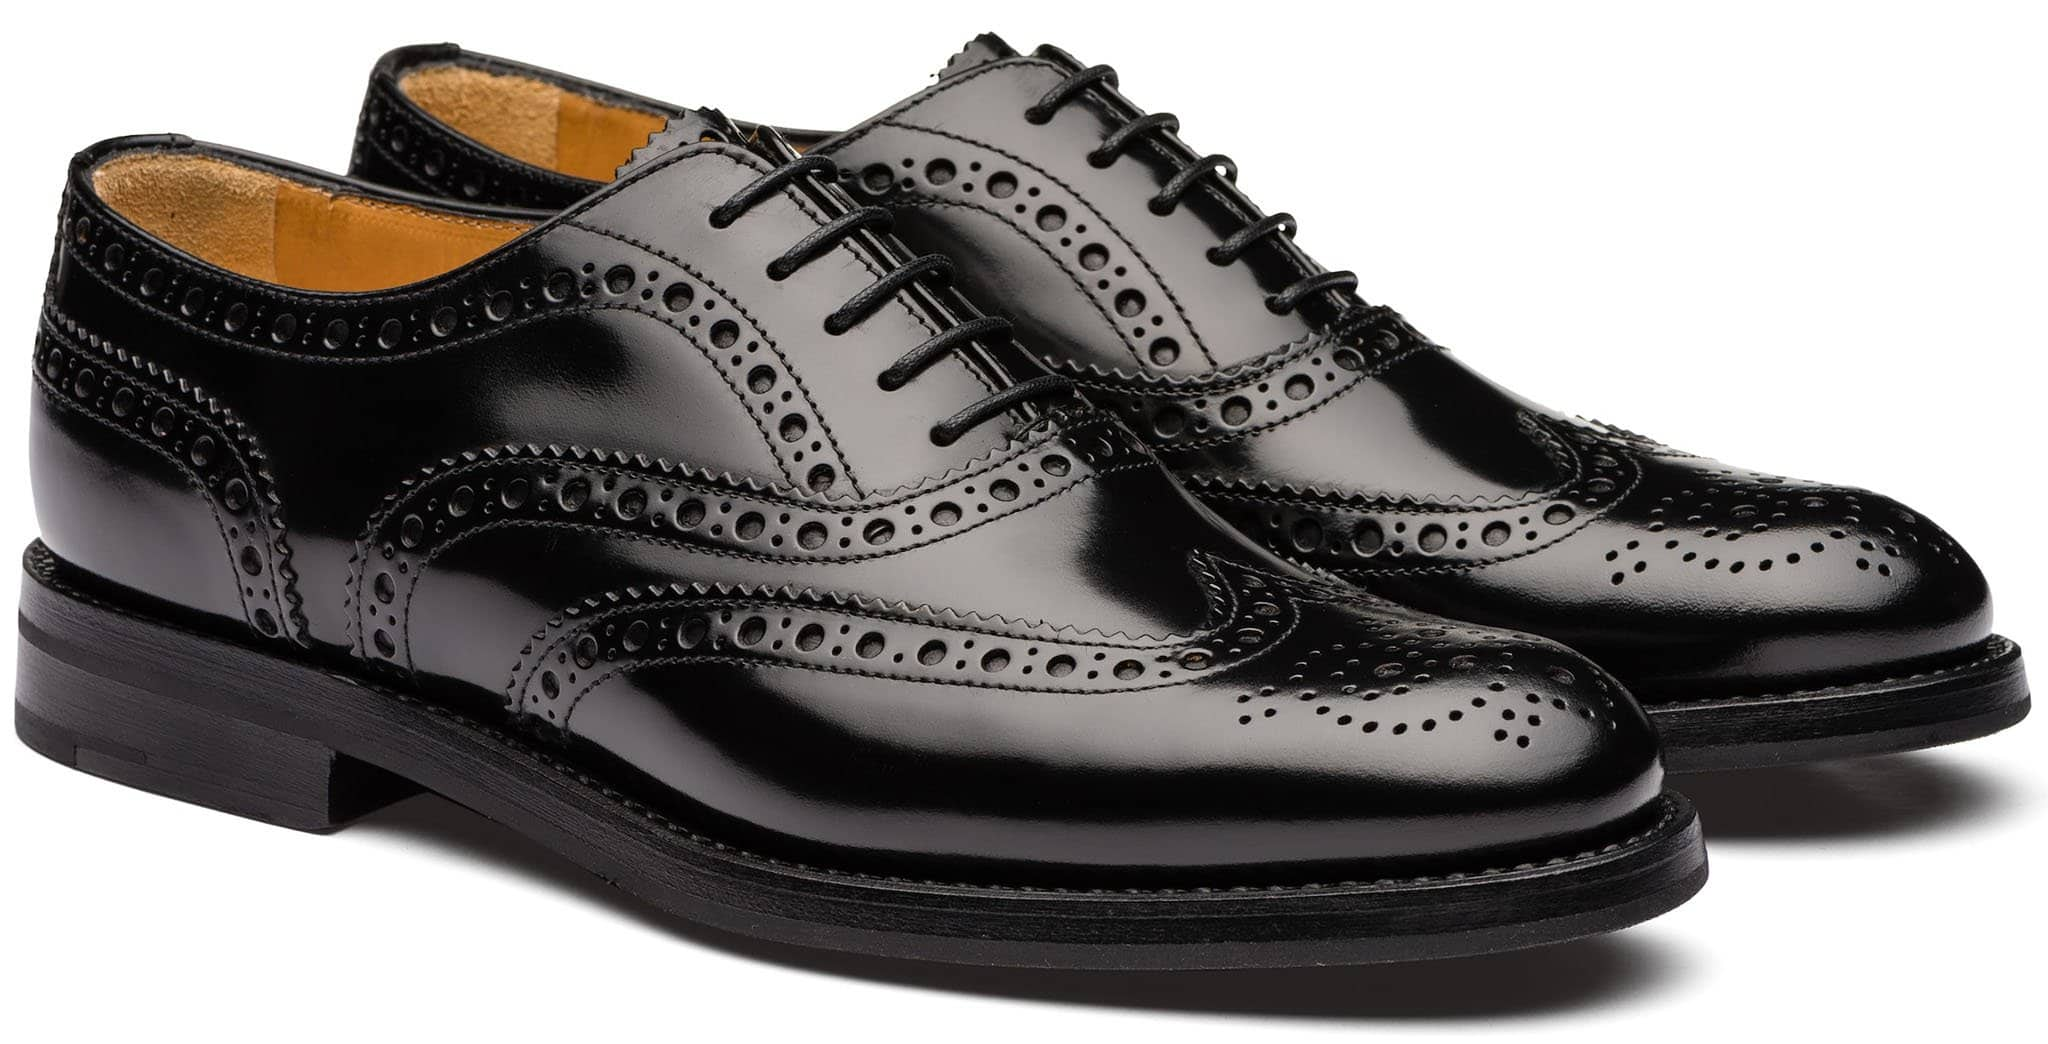 Gorgeous oxfords with a polished binder finish, brogue lace-up, and a wingtip design